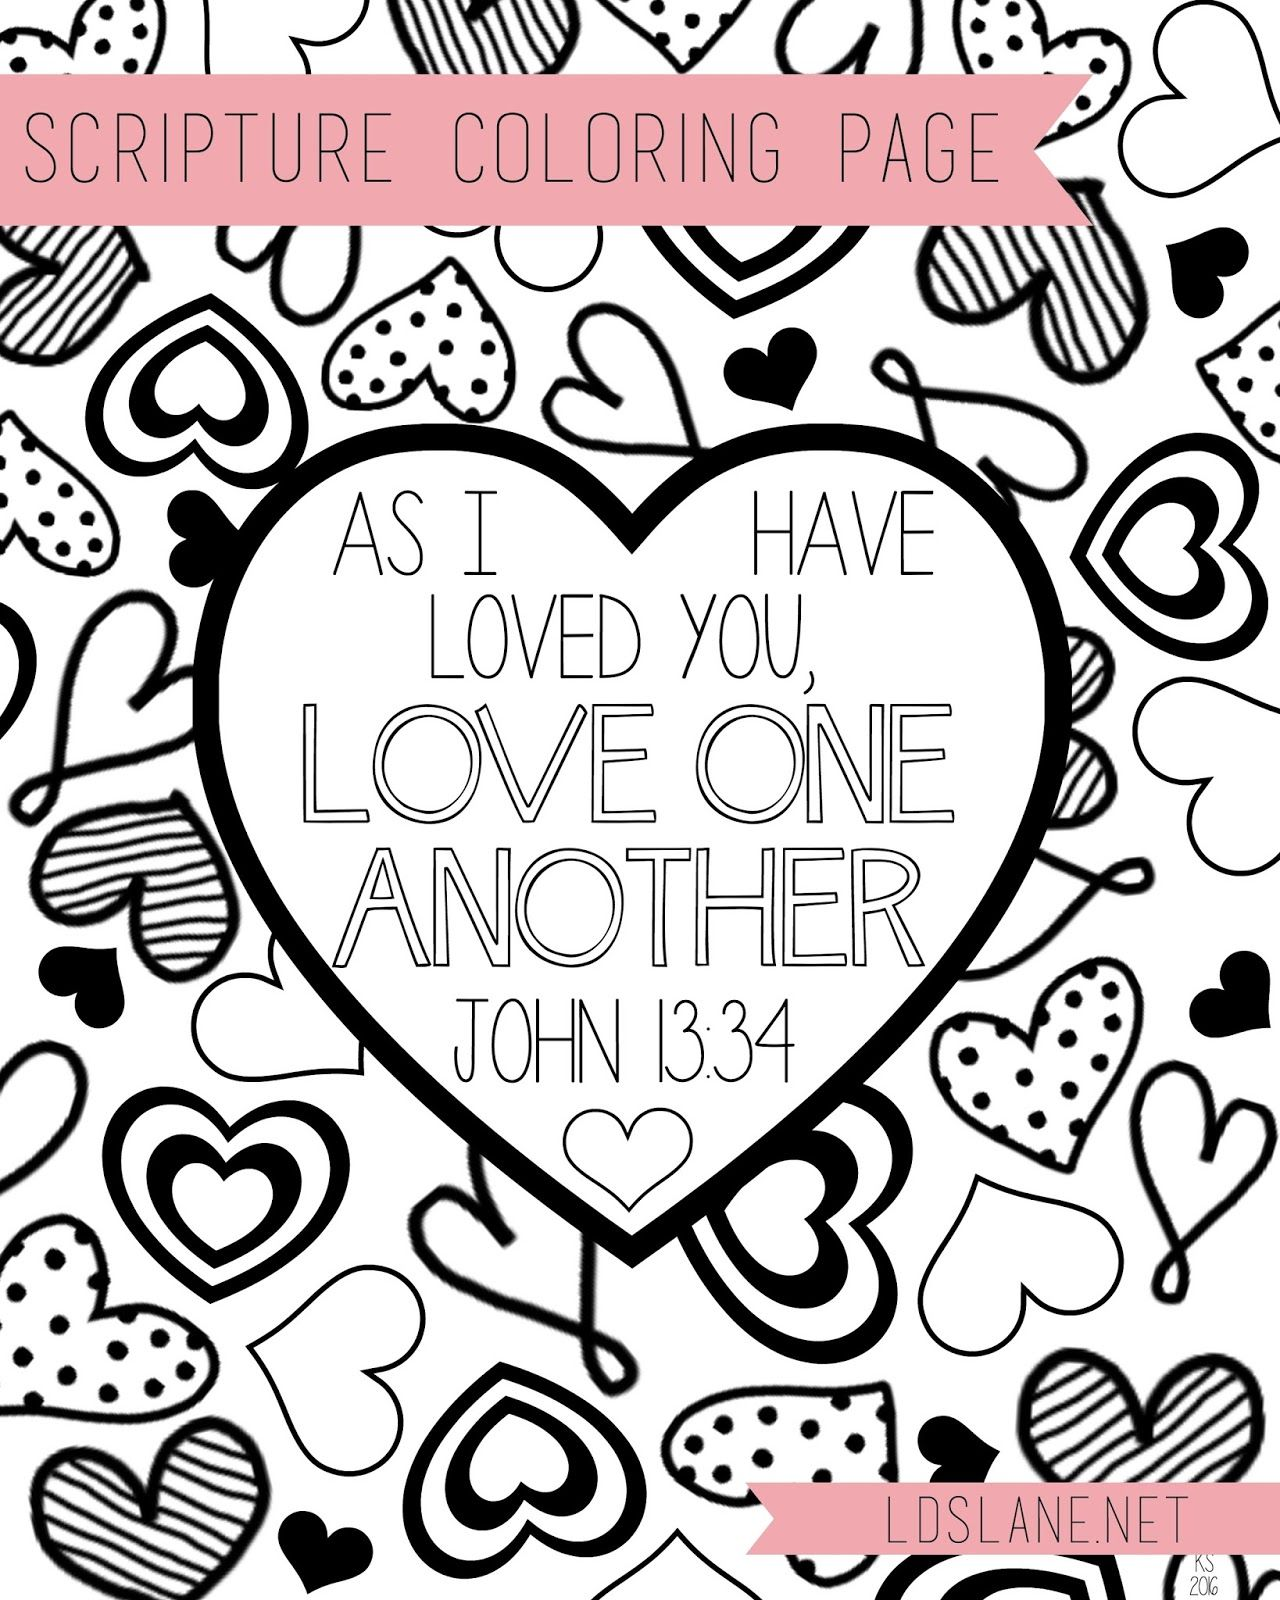 scripture coloring page love one another free print at ldslanenet - One Coloring Page